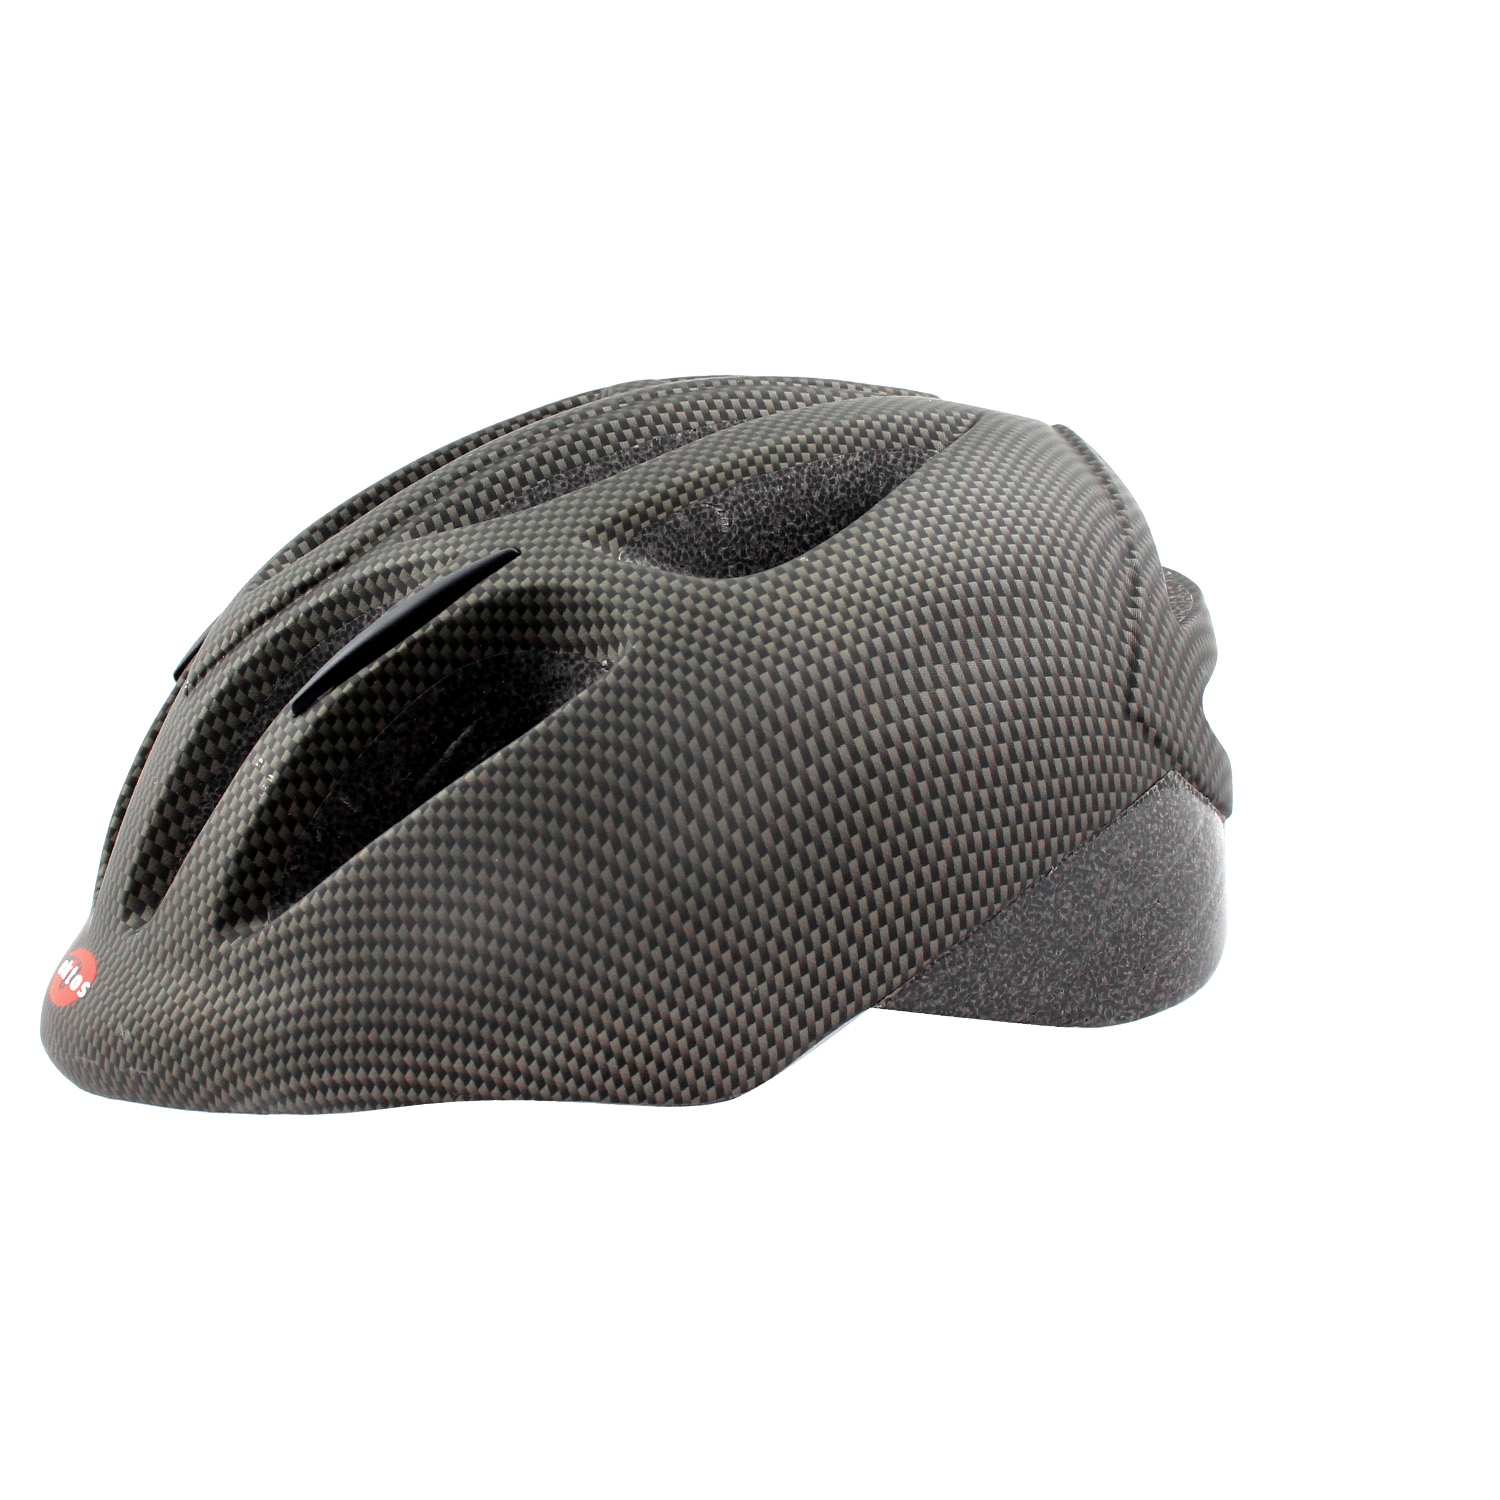 Casque vélo Adulte Oktos City Noir - L (58-61)